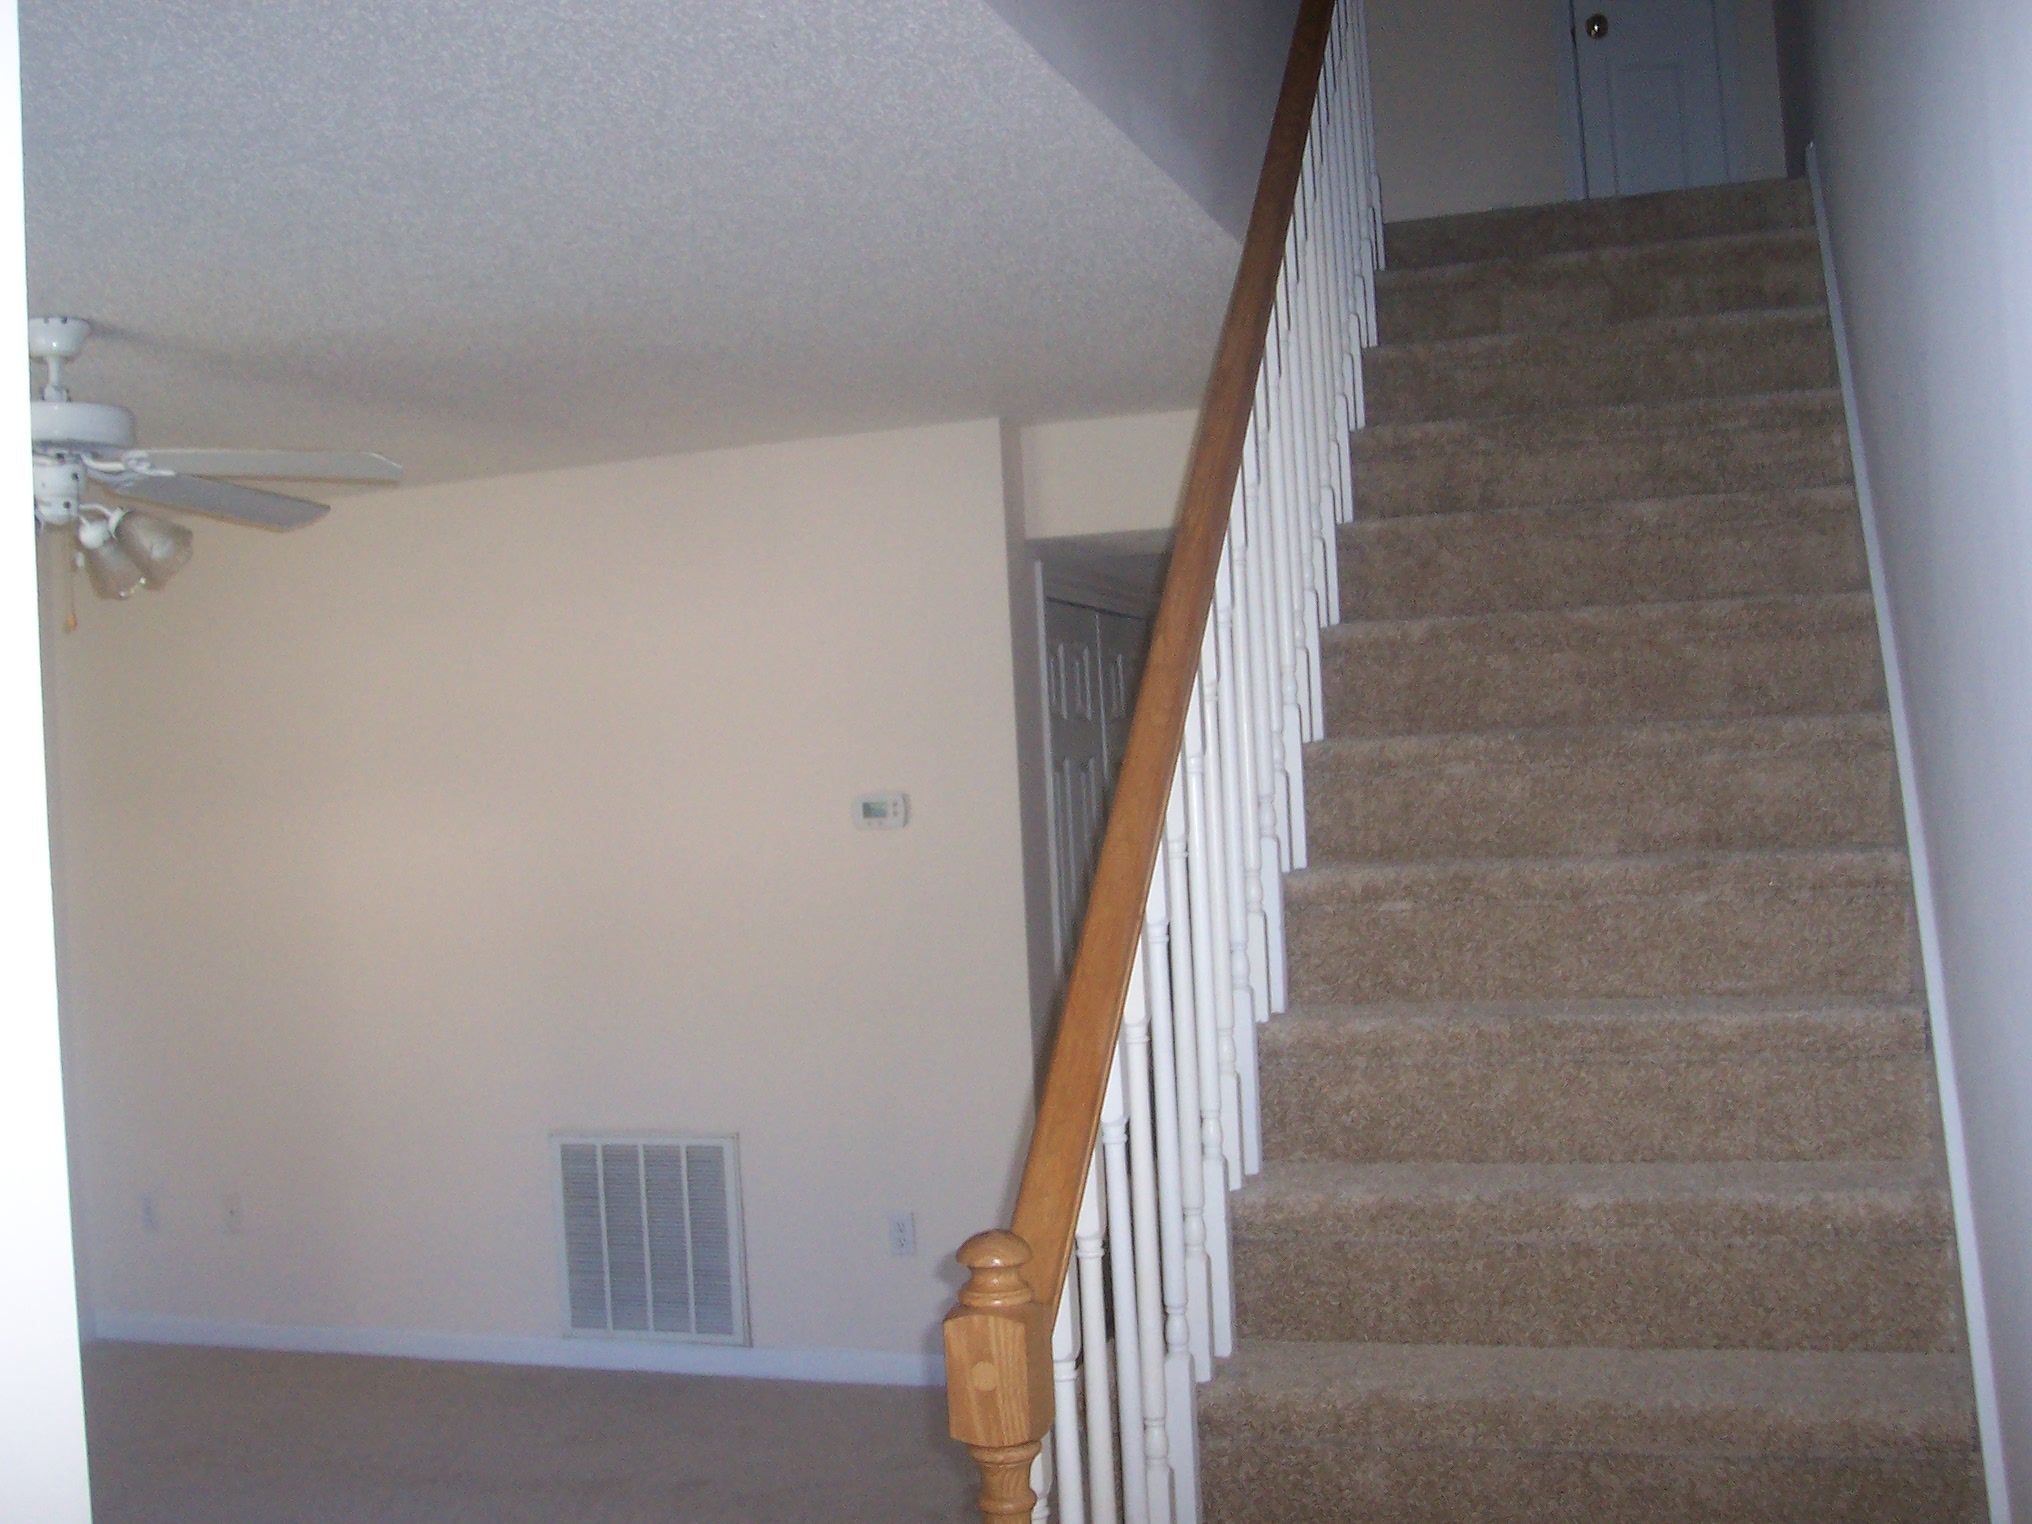 Interior Features: Carpet and Vinyl Floor Covering, Washer/Dryer Hookups/Refrigerator/Range/Dishwasher/Disposal  all Included. Both Bedrooms Upstairs.